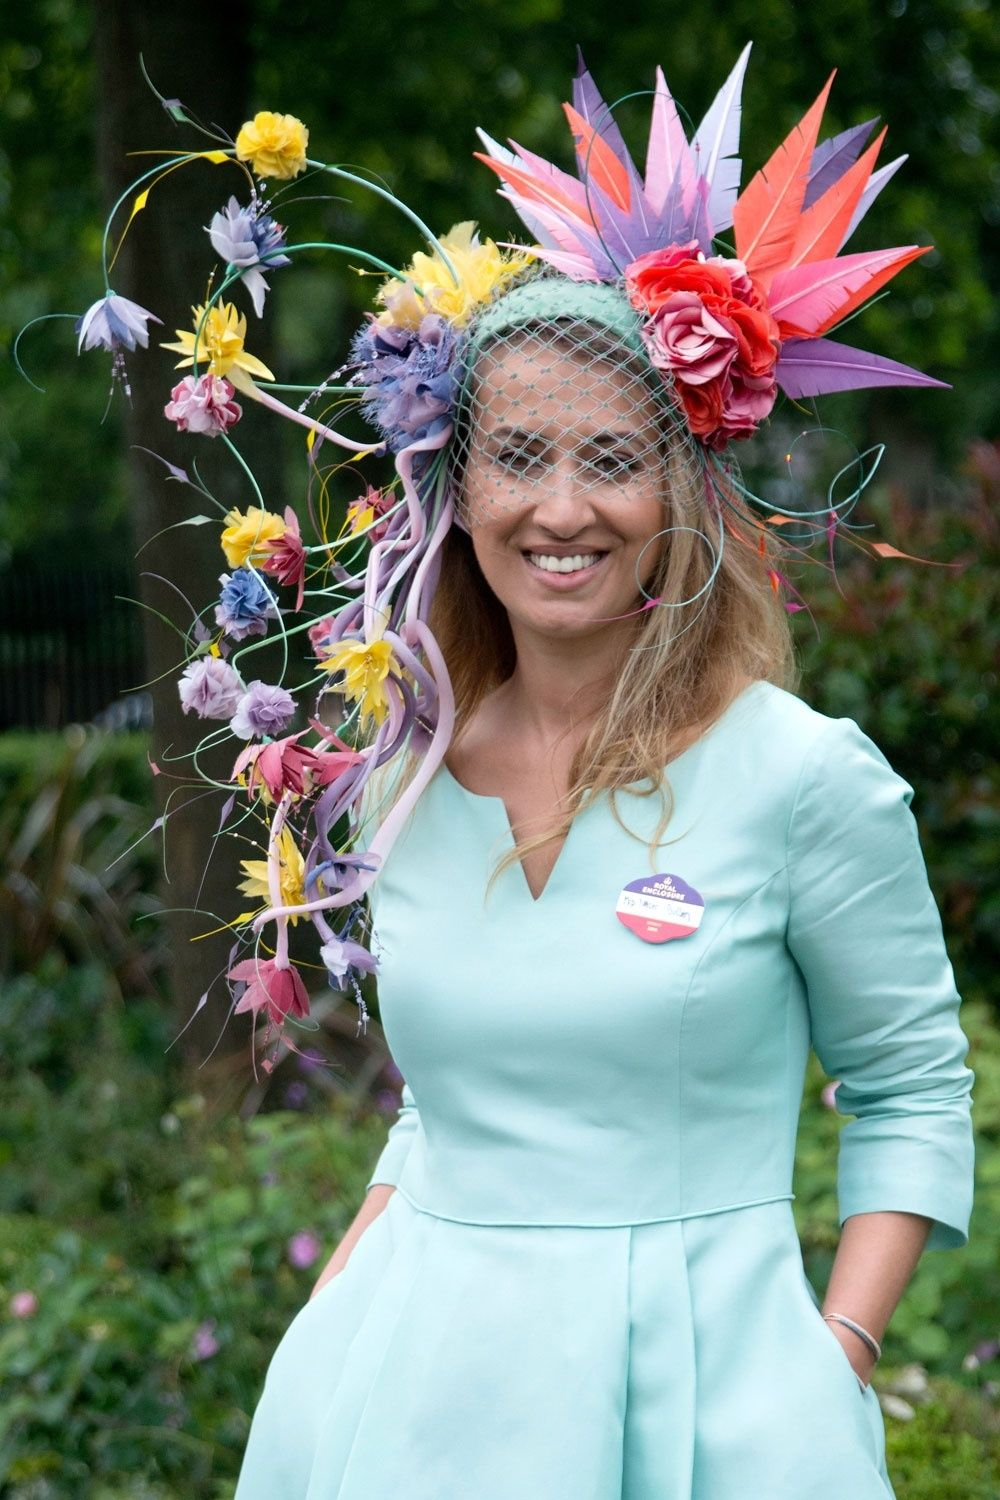 The 37 Craziest Hats From Royal Ascot 2016 Ascot hats